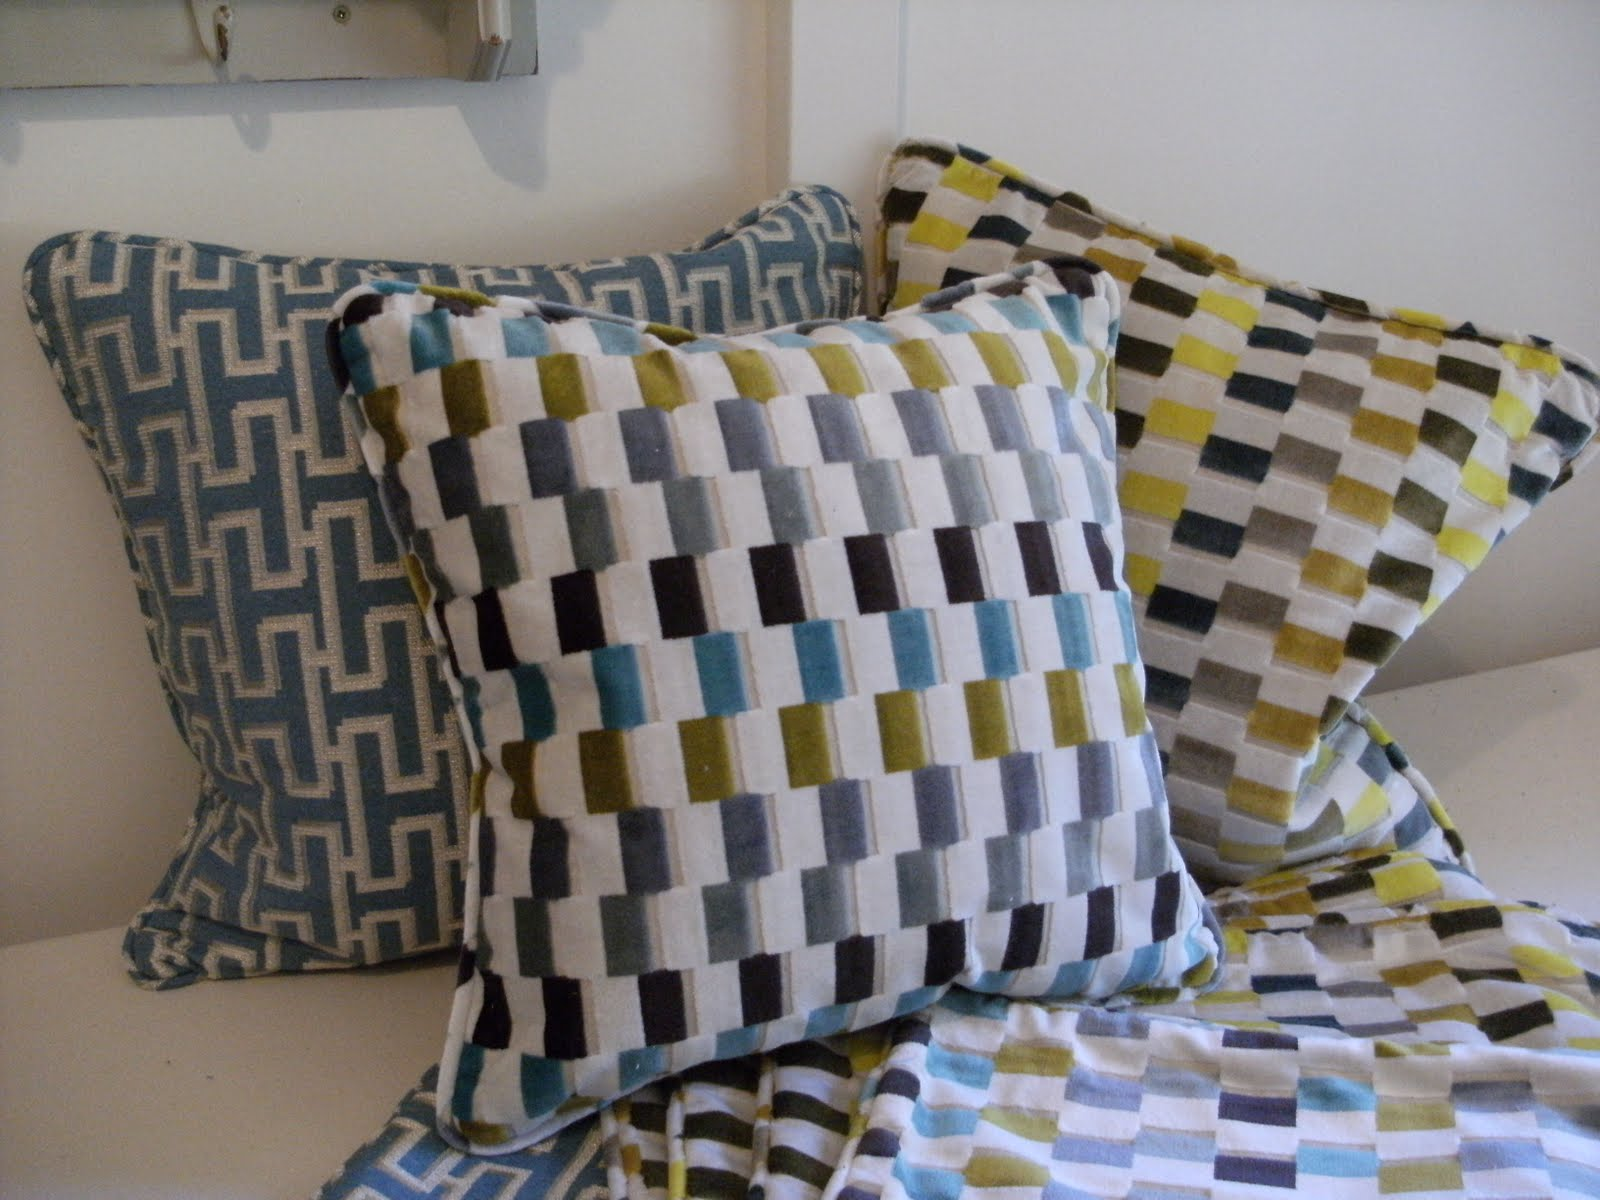 Sew a classic piped cushion cover - a tutorial. & Sew Good by Deborah Good: Sew a classic piped cushion cover - a ... pillowsntoast.com